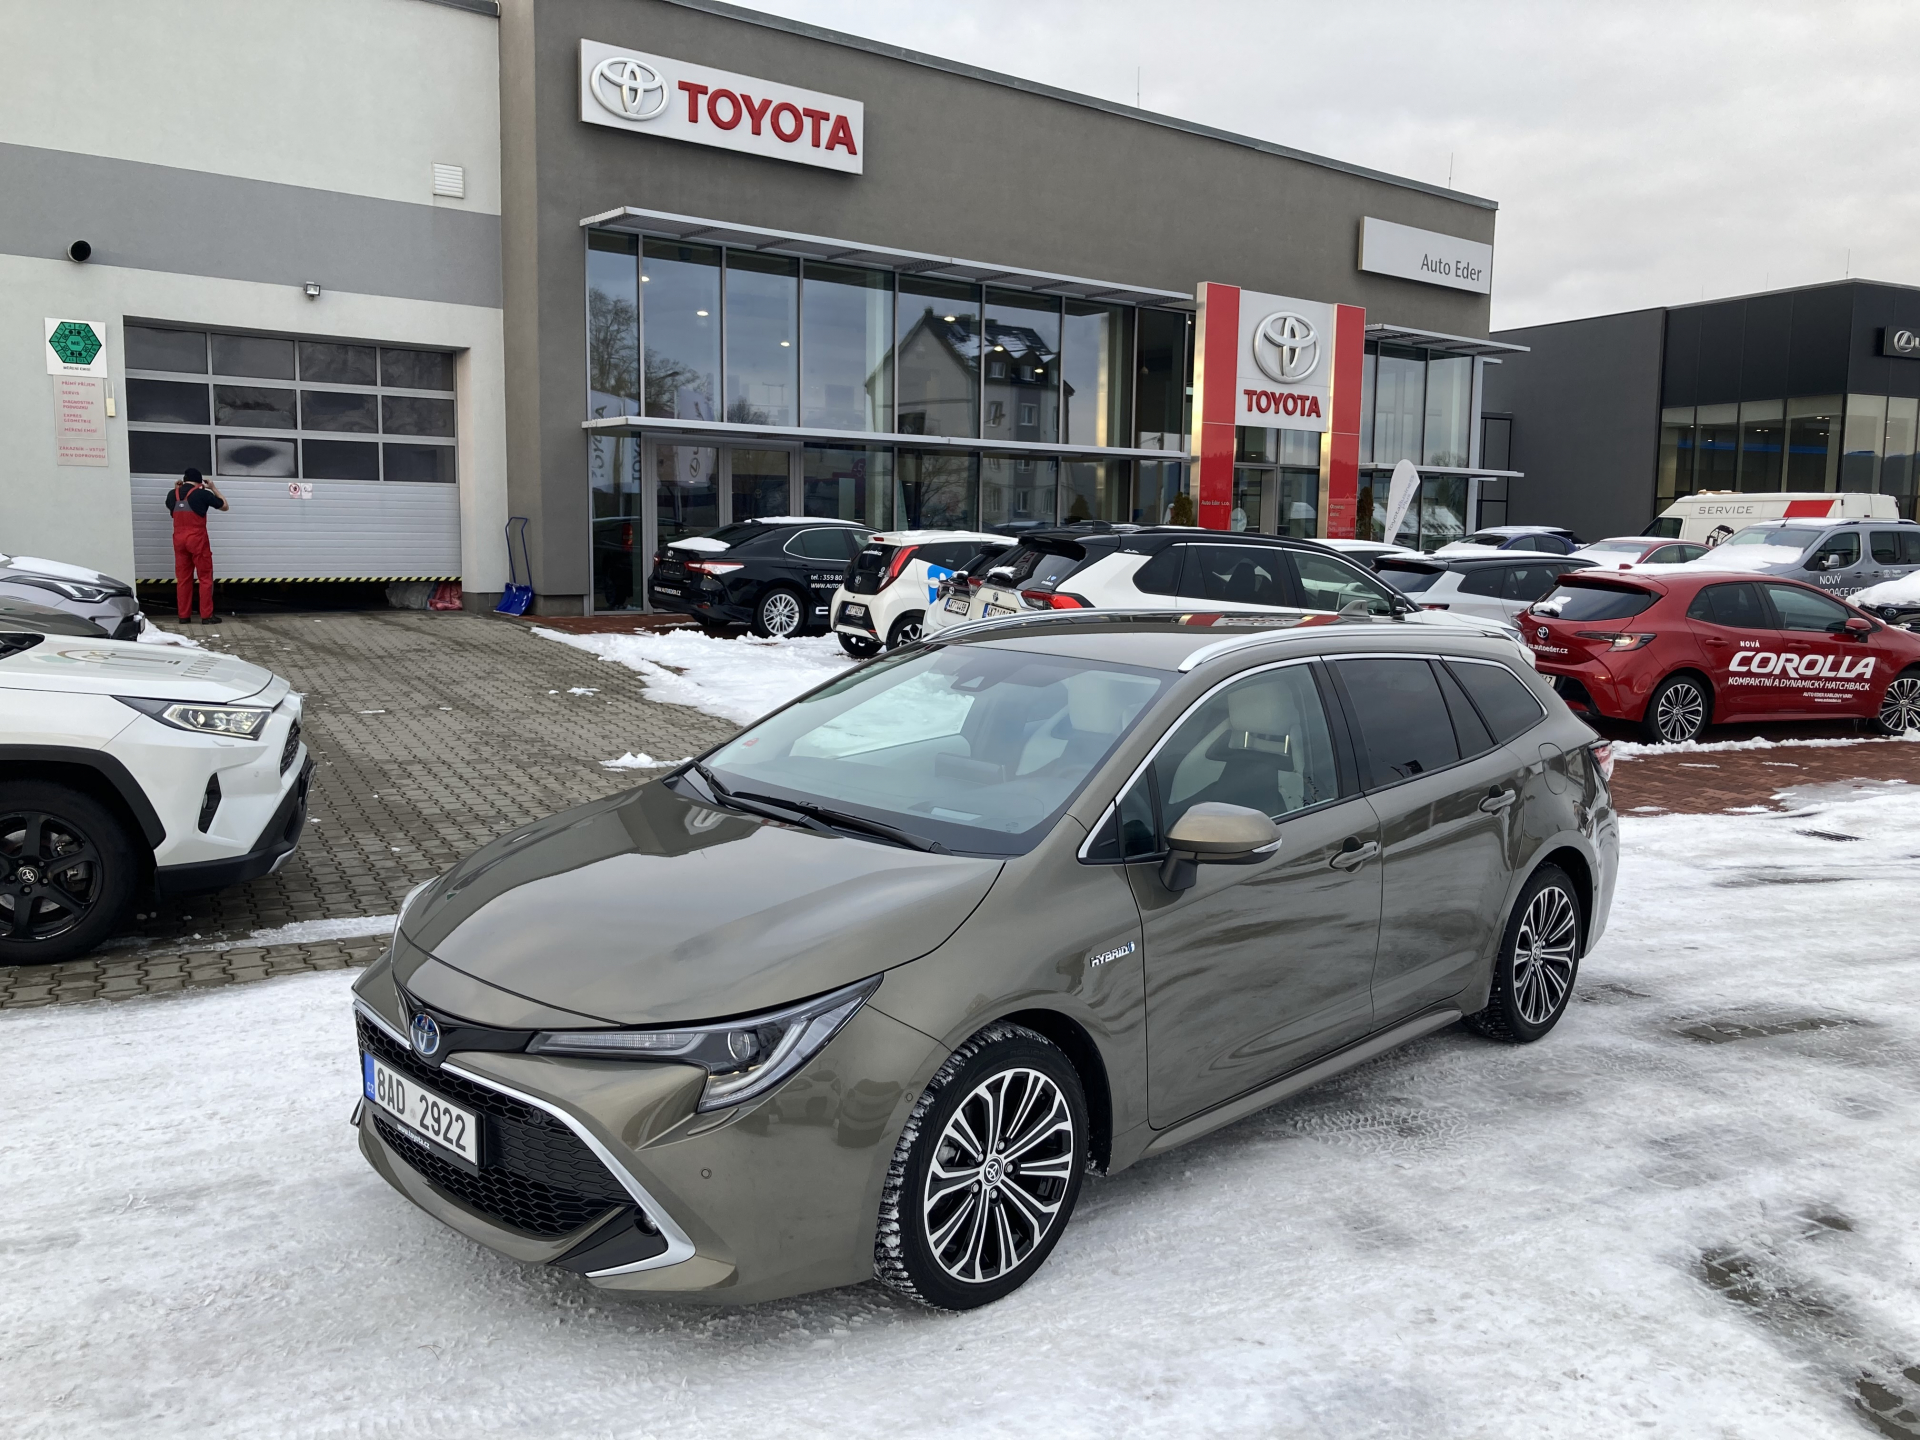 Toyota COROLLA Touring Sports 1,8 Hybrid (122 k) aut. e-CVT Executive